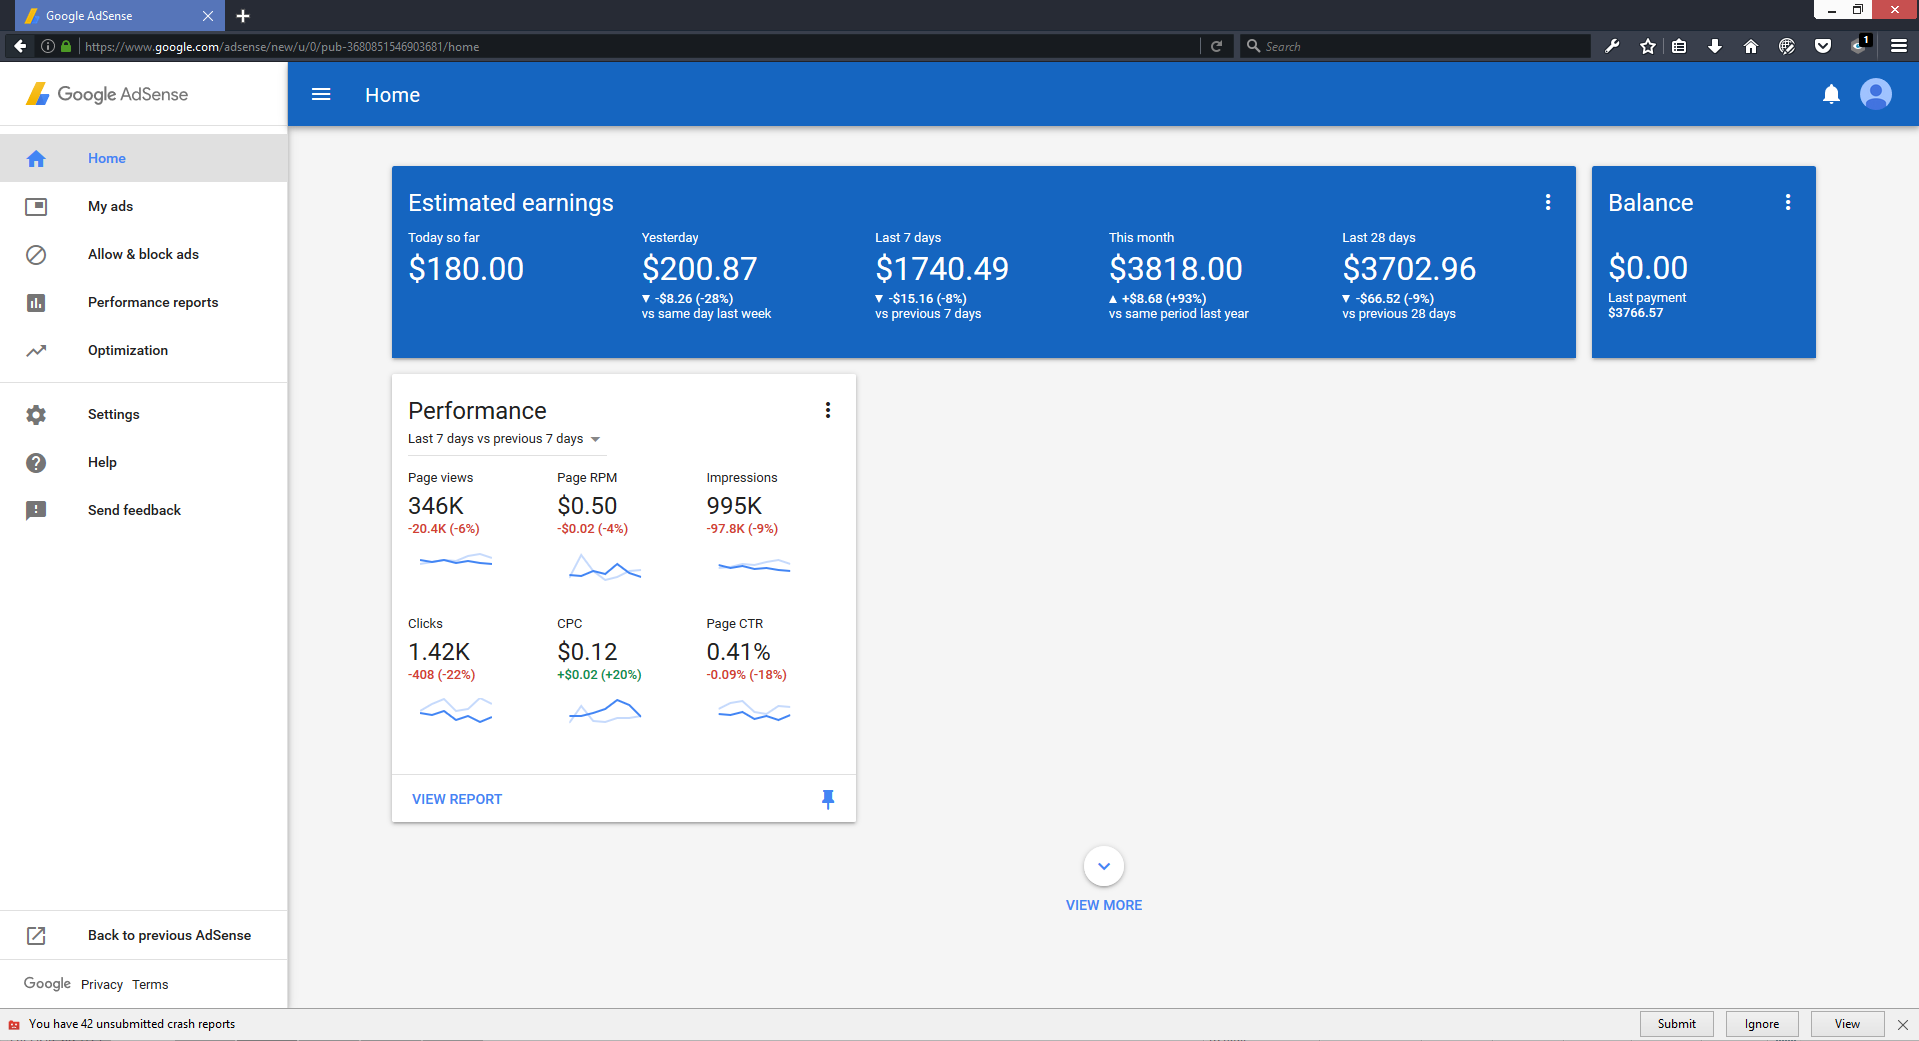 sell method to make $100 with adsense per day